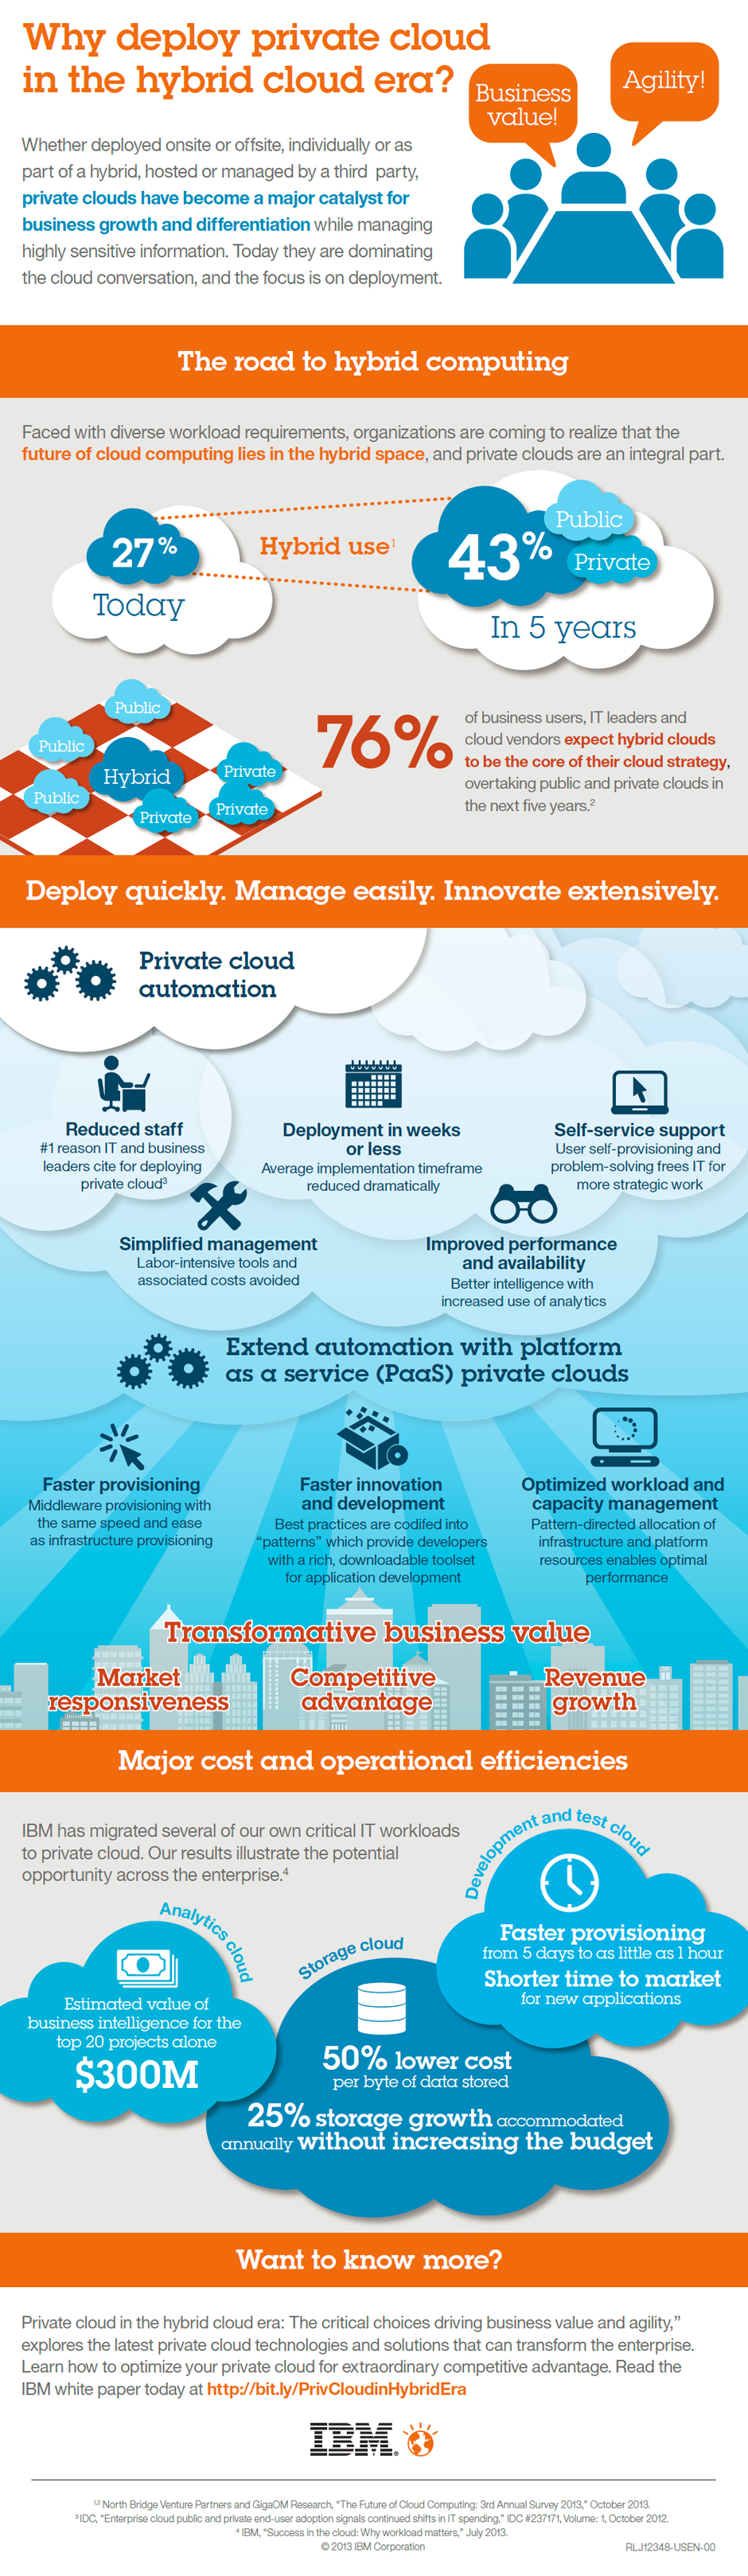 Why deploy private cloud in the hybrid cloud era?